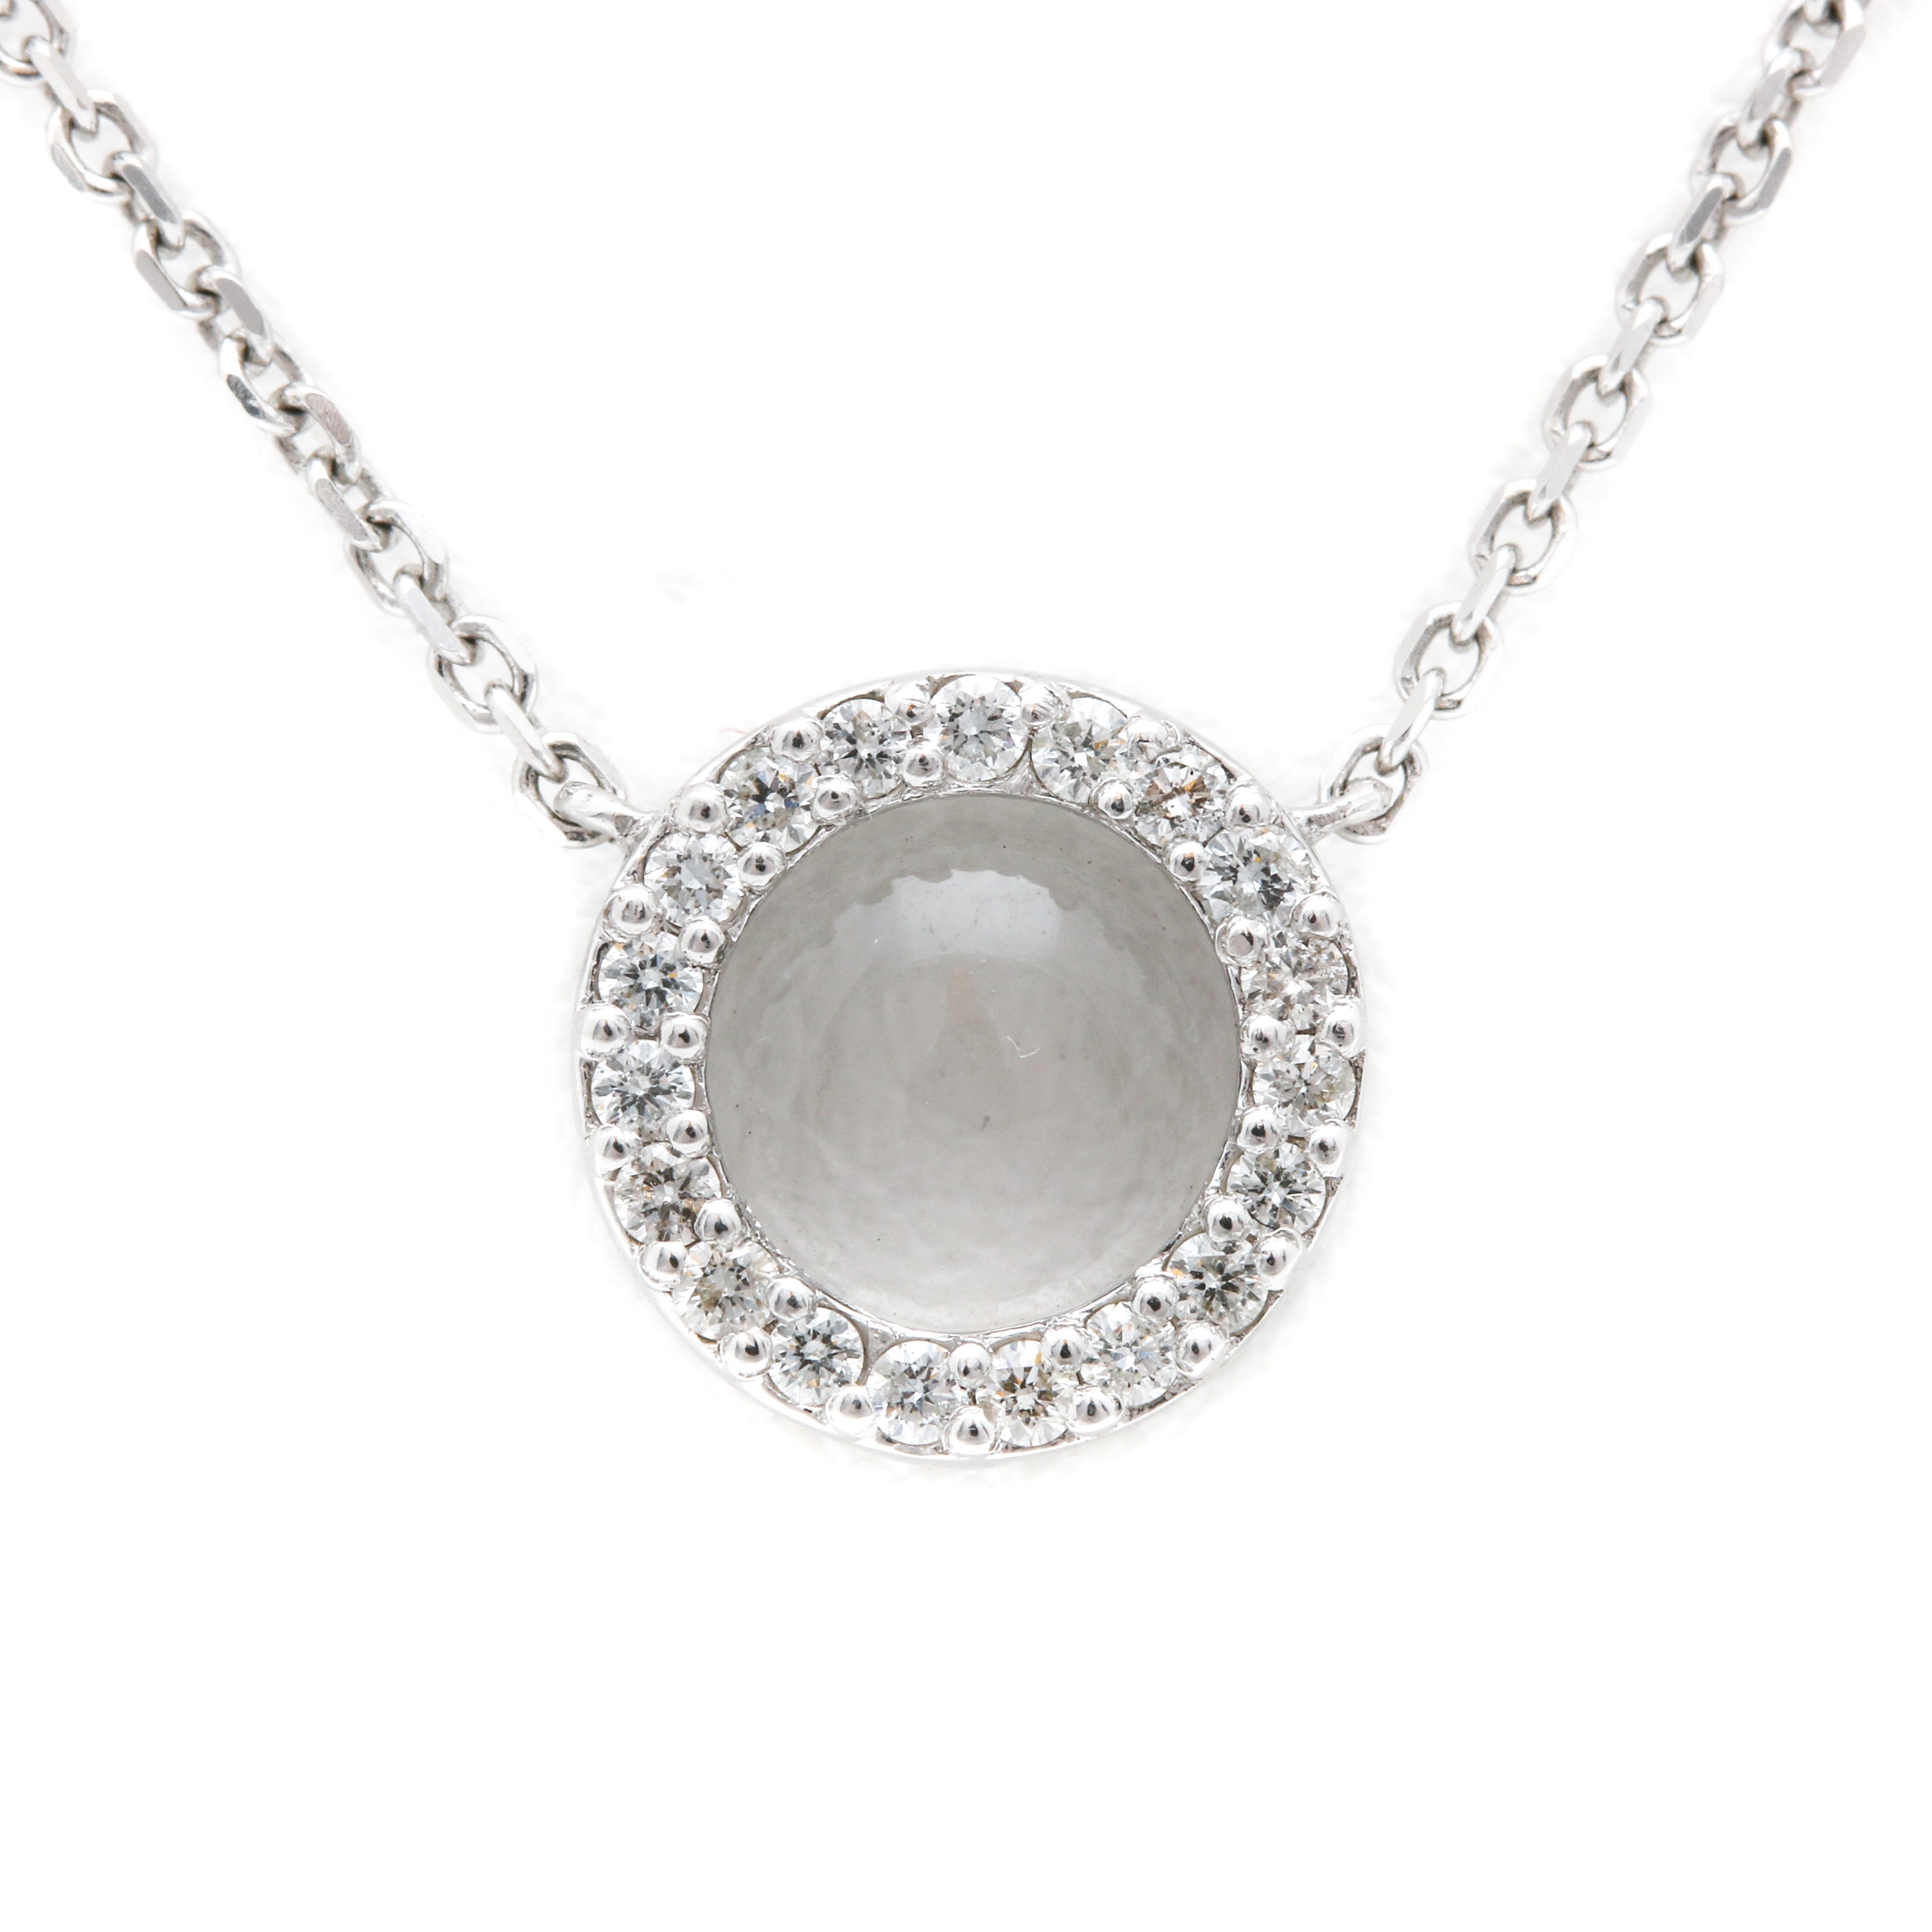 14K White Gold Diamond Fixed Pendant Necklace with Magnifying Glass